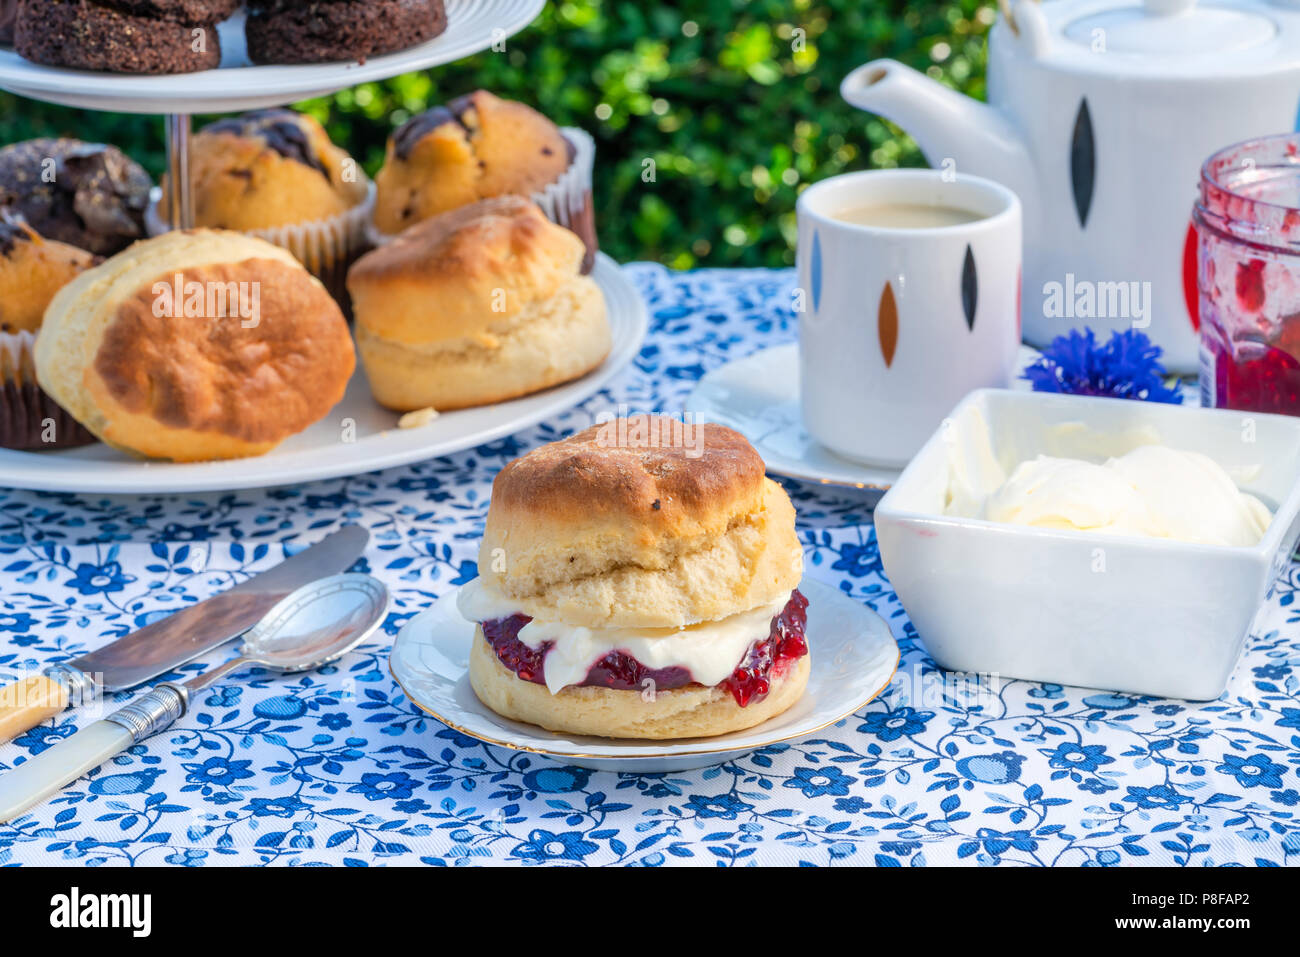 Afternoon tea with cakes and traditional English scones with strawberry jam and clotted cream set up on a table in the garden. Outdoor dining. - Stock Image